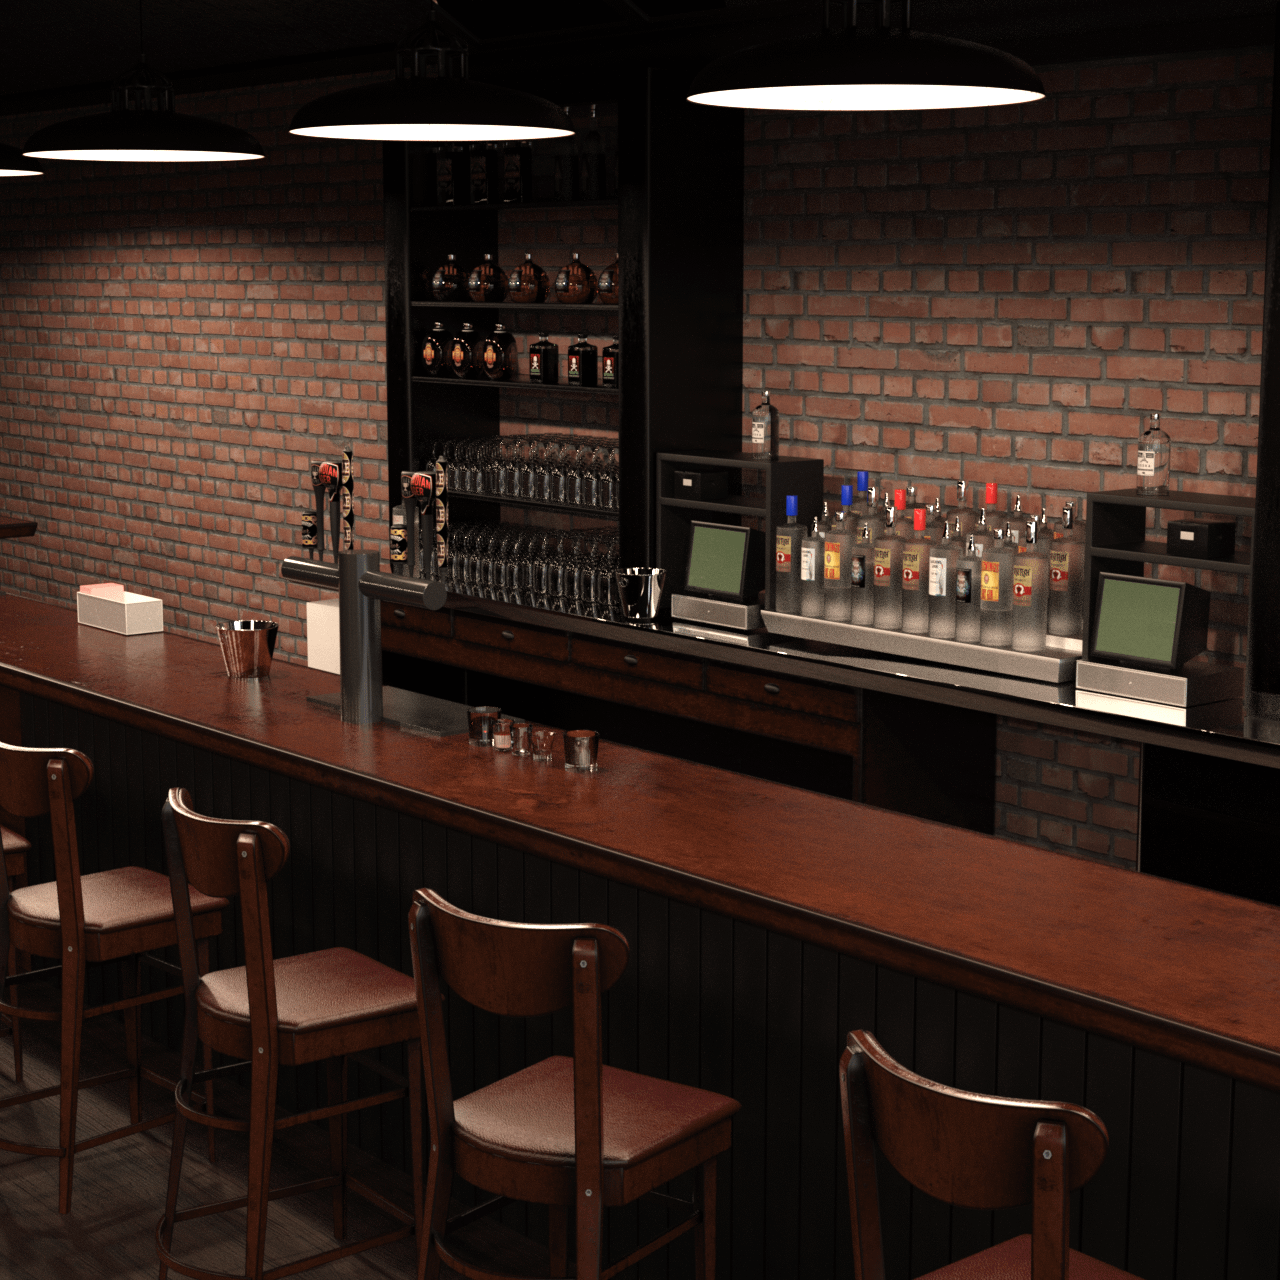 3d model of a bar counter showing multiple chairs and, glasses and drinks